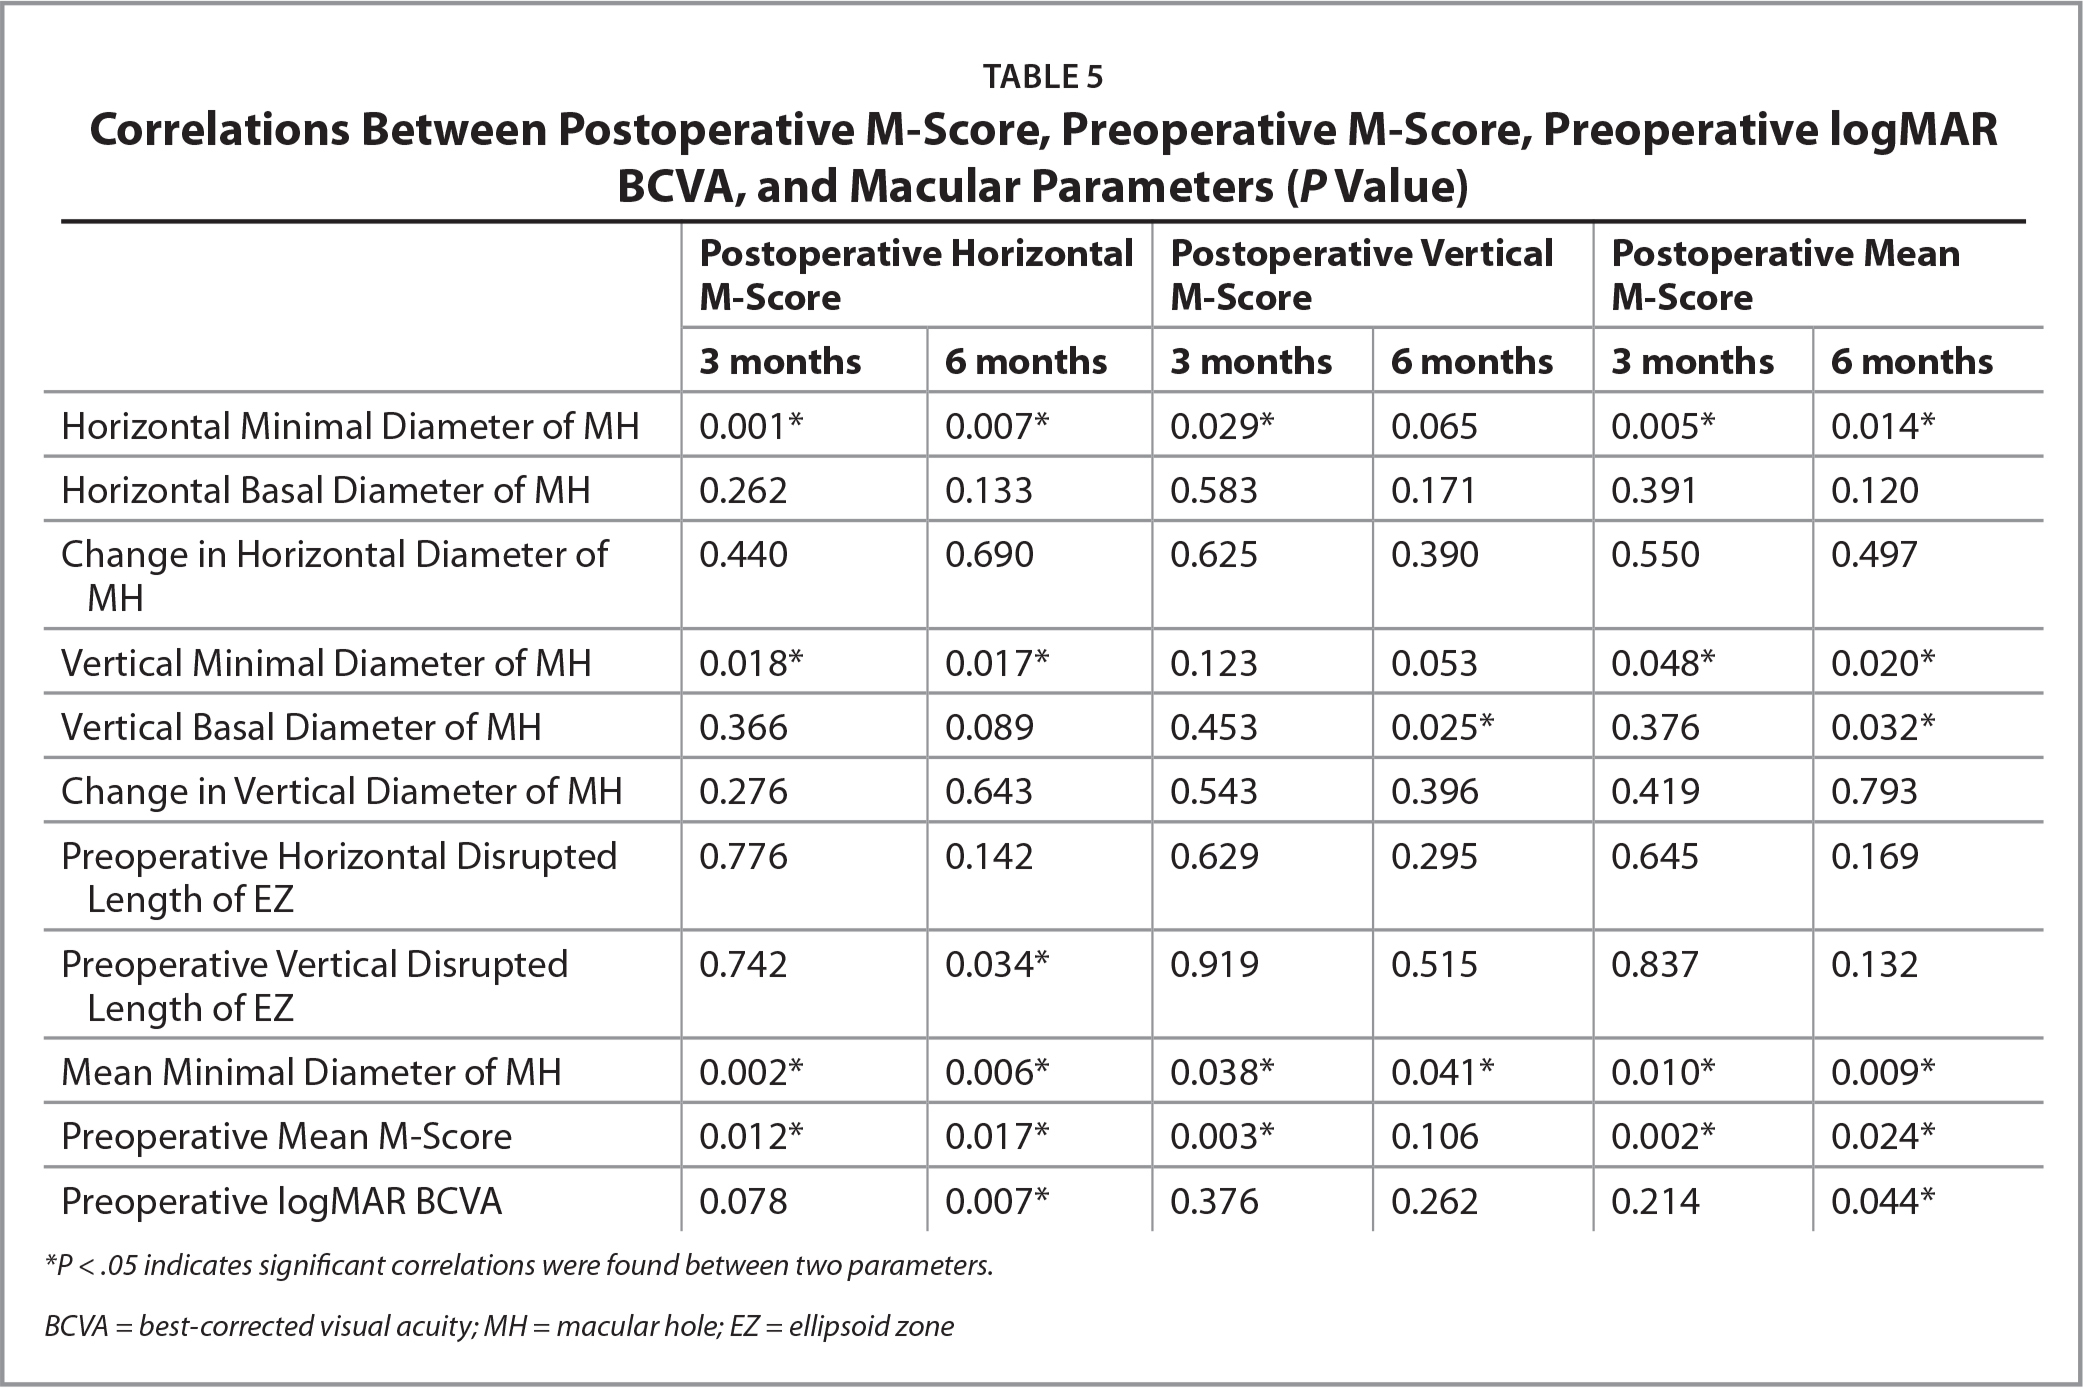 Correlations Between Postoperative M-Score, Preoperative M-Score, Preoperative logMAR BCVA, and Macular Parameters (P Value)